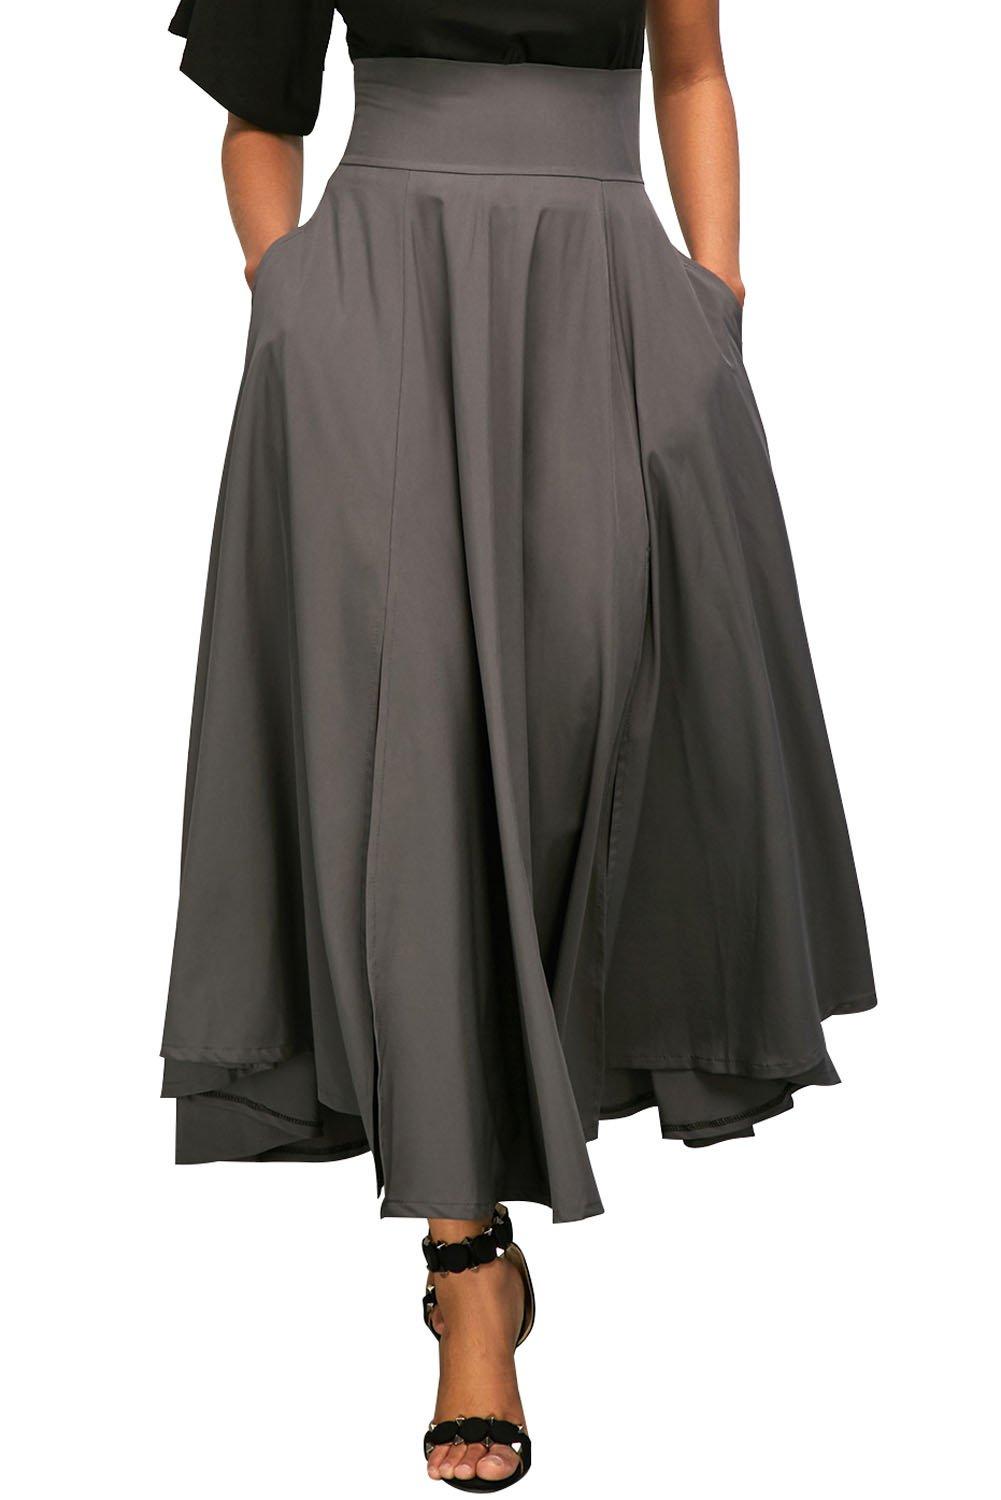 QUEENIE VISCONTI Women Retro High Waist Pleated Belted Maxi Skirts with Pockets Gray M